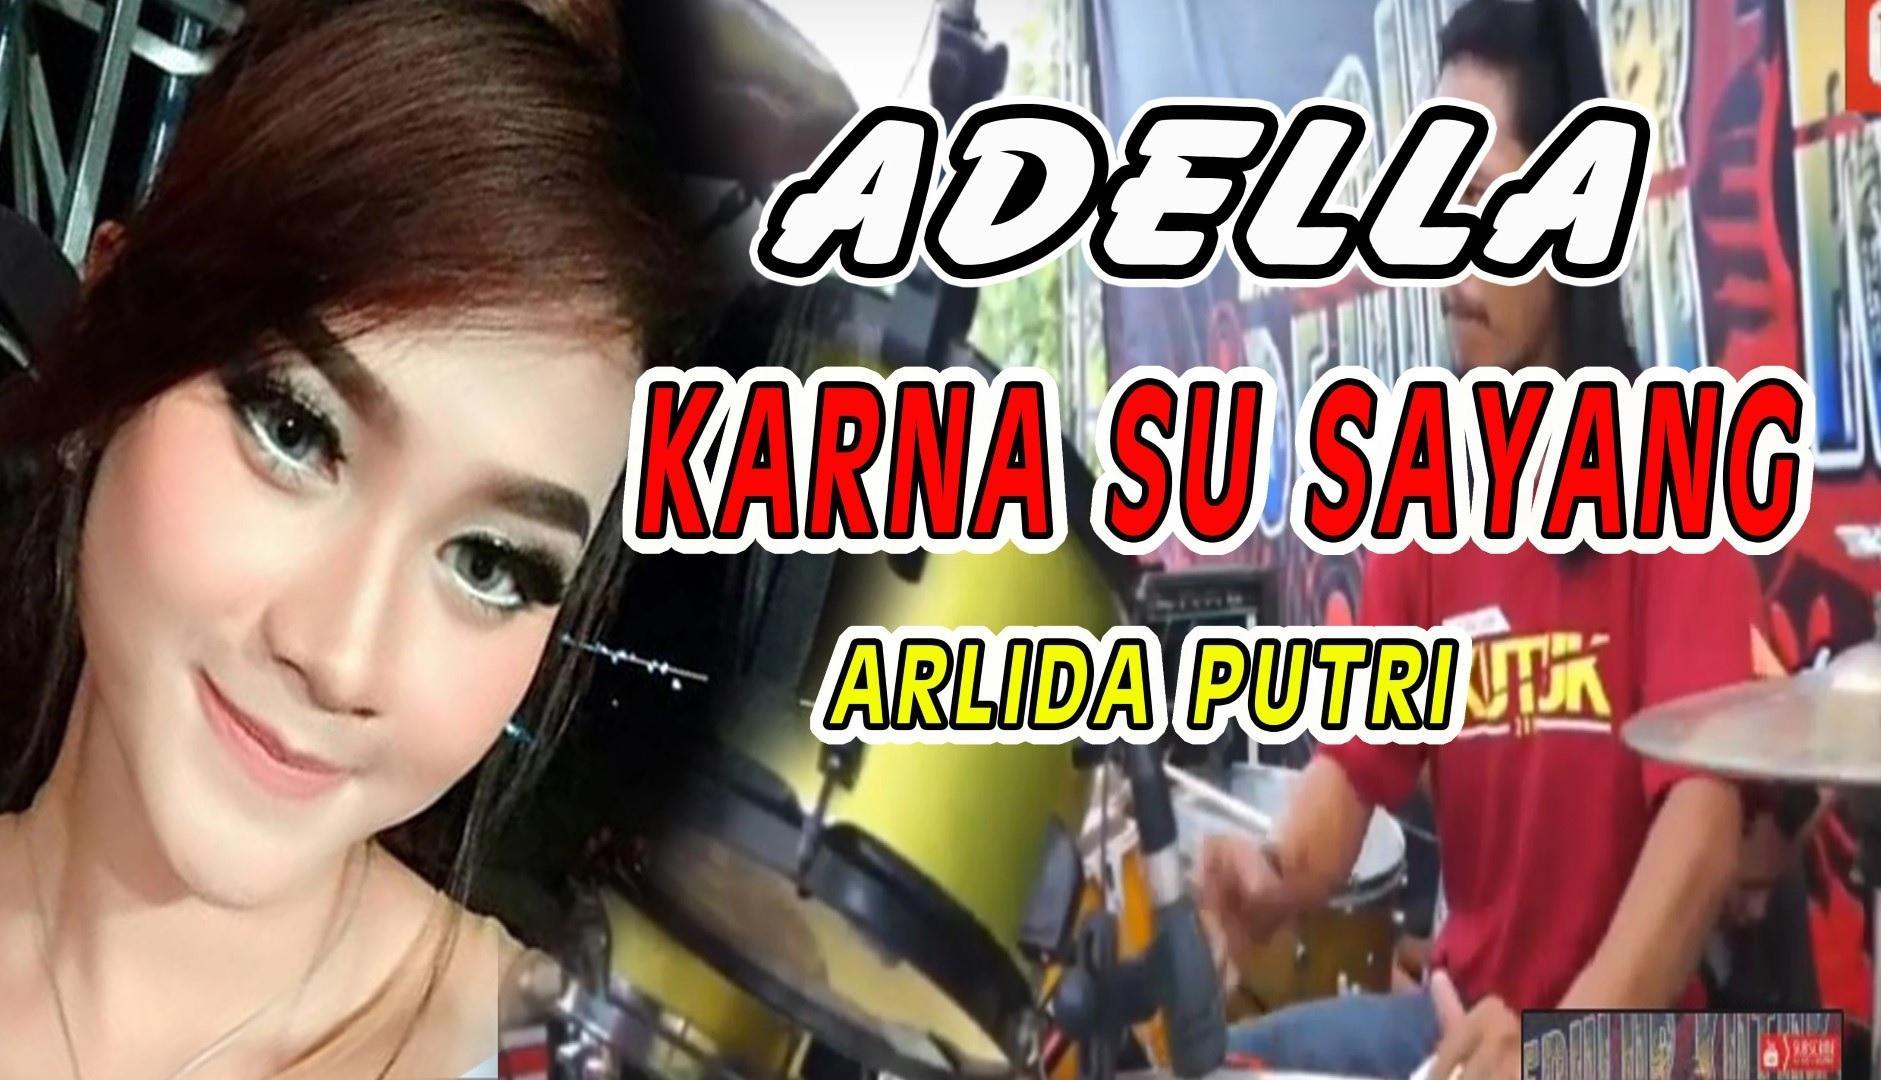 Om Adella Dangdut Arlida Putri For Android Apk Download